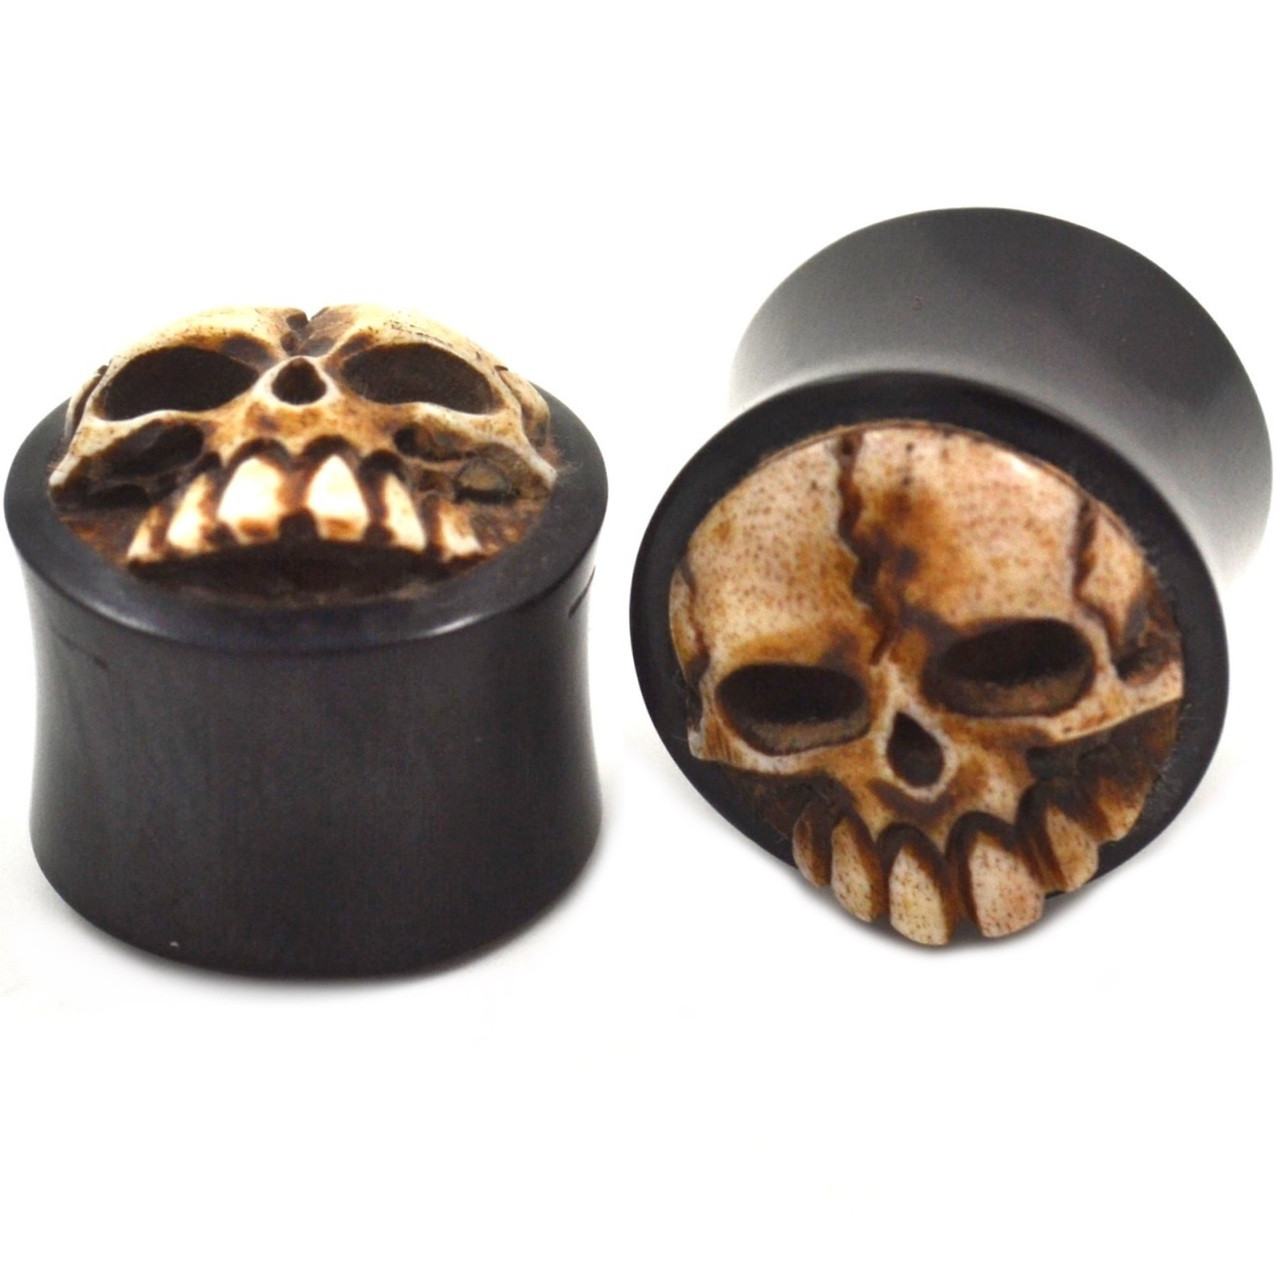 Pair Of 3d Skull Hand Carved Organic Buffalo Horn Double Flared Ear Plugs Gauges Sold As